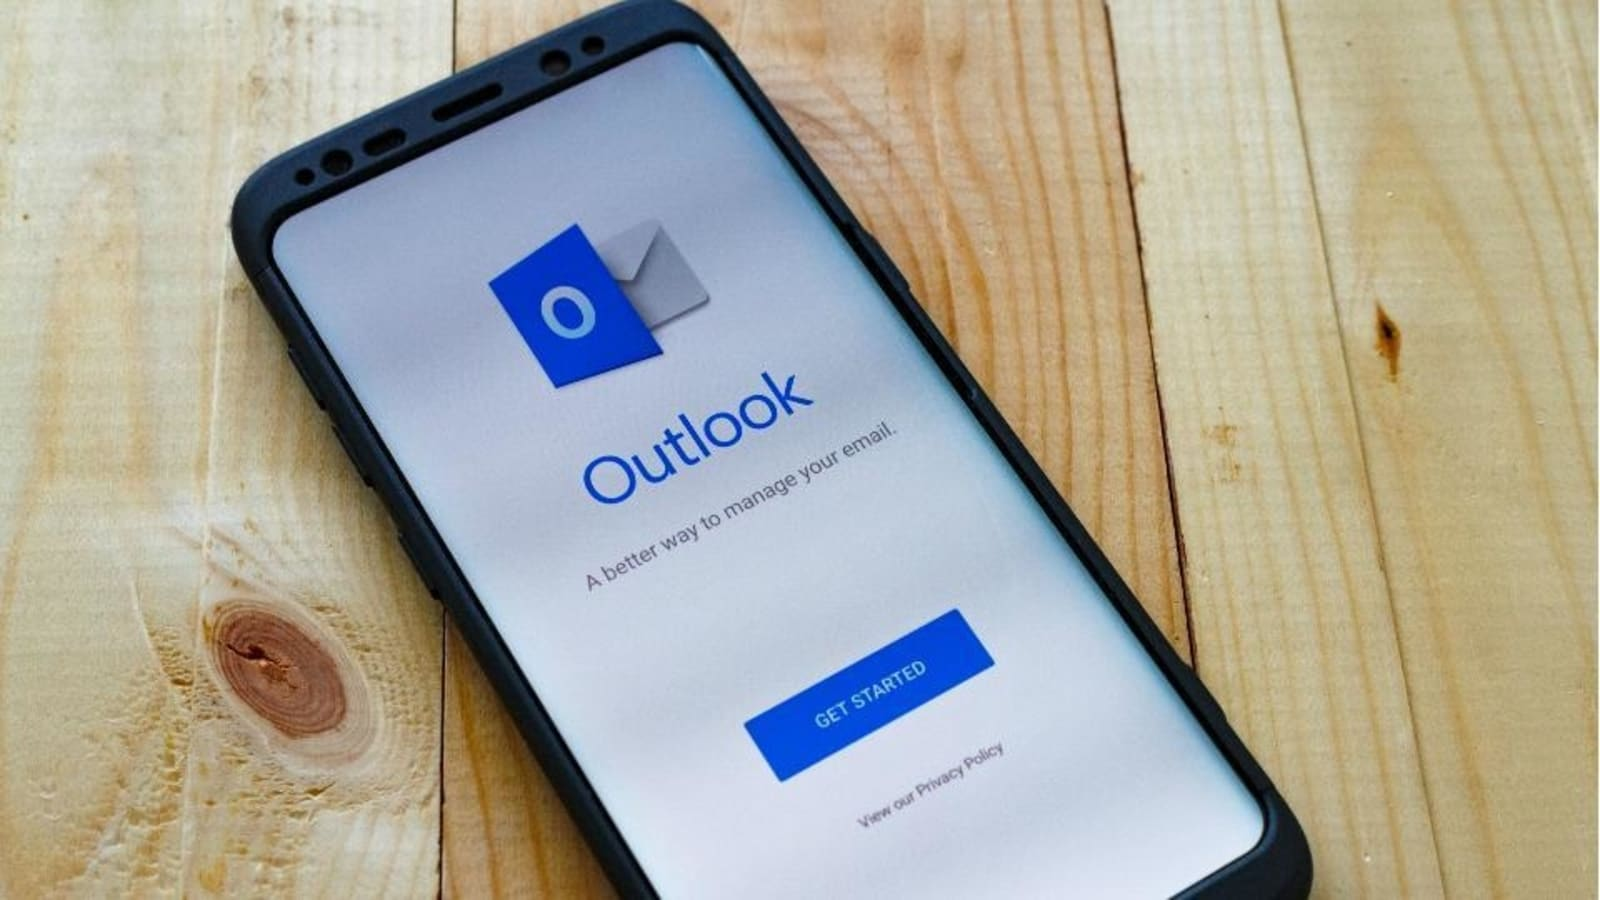 Microsoft Outlook will send emails to users, schedule events with voice on iOS and Android